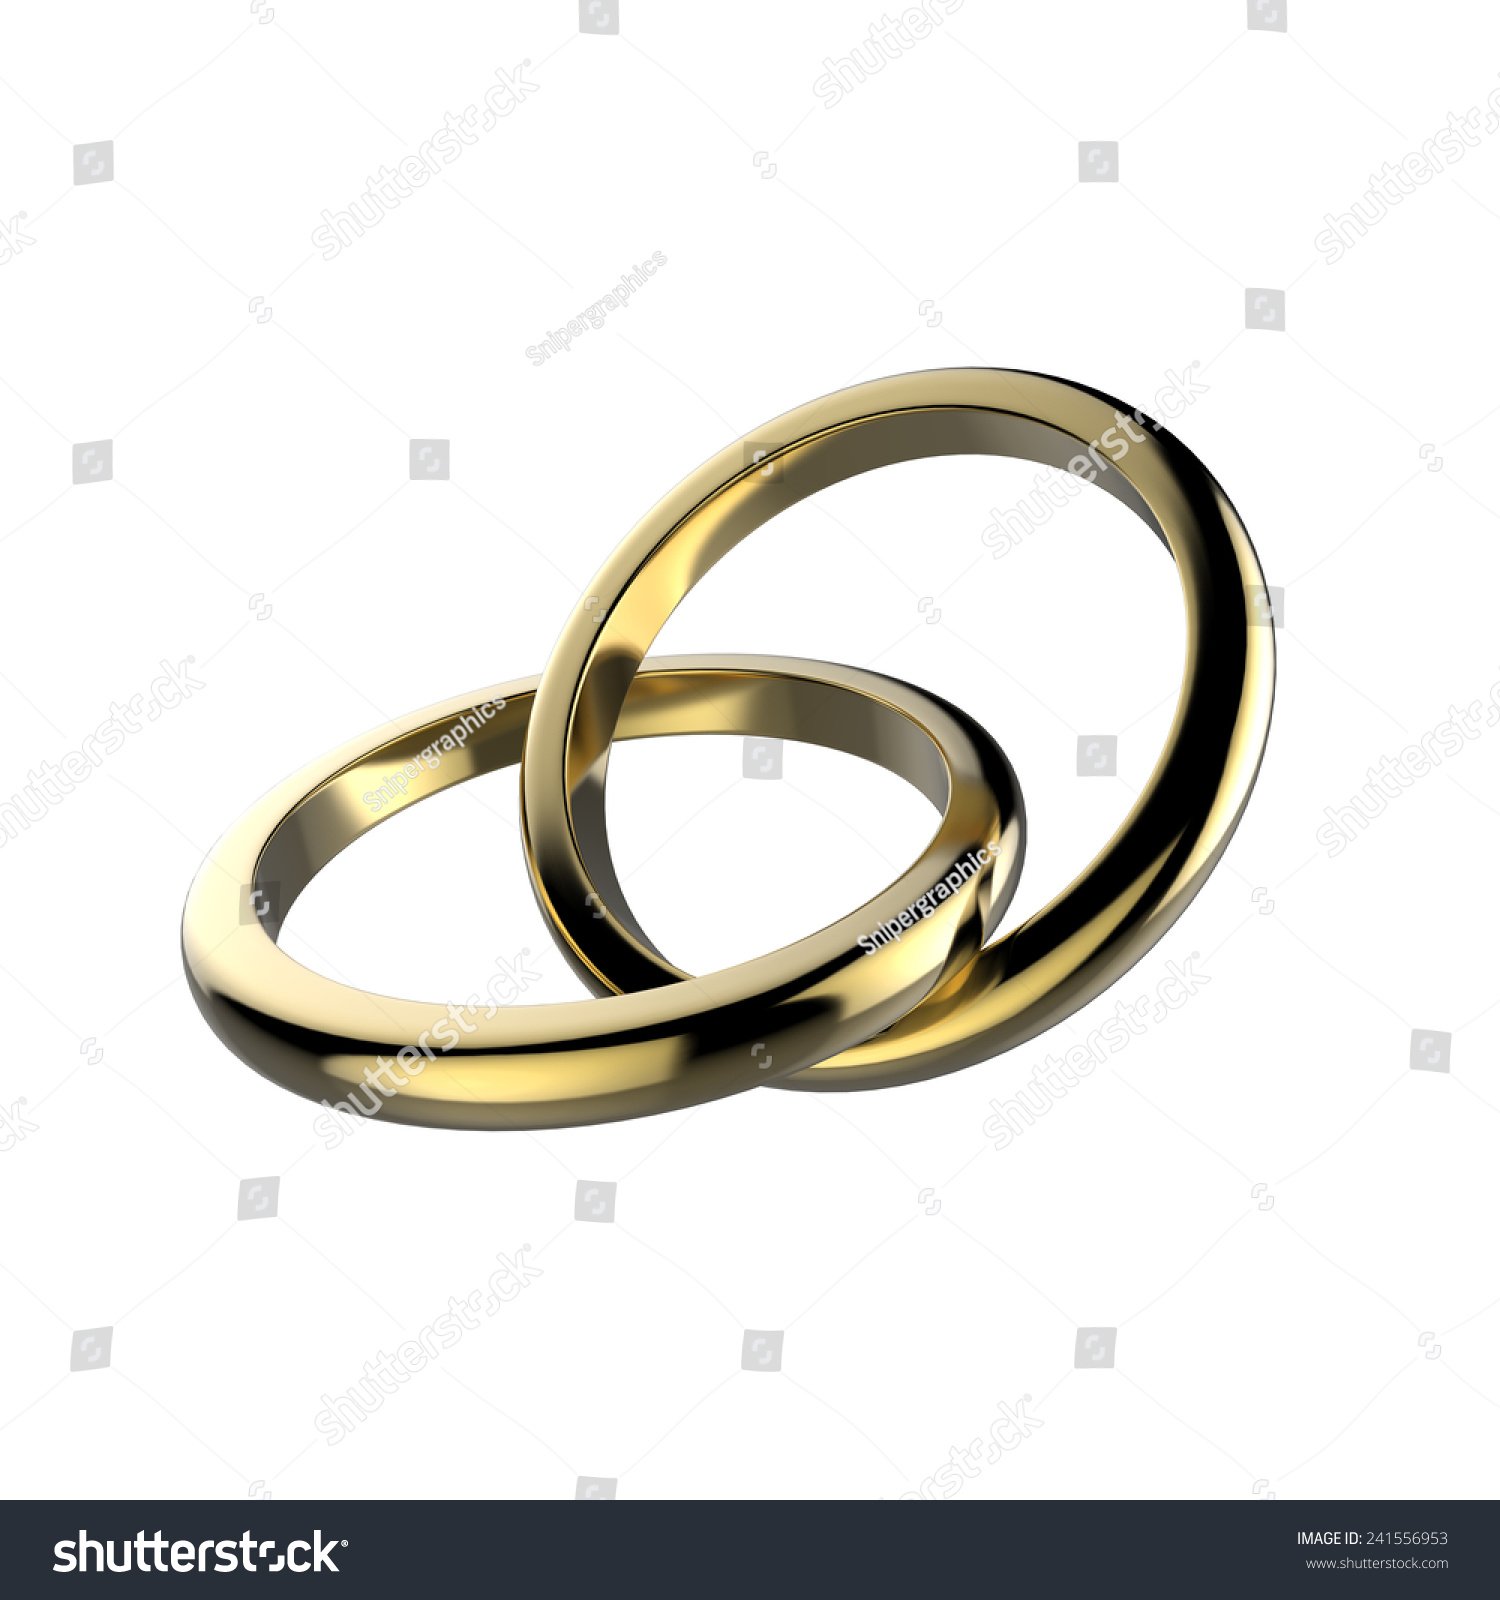 anniversary wedding photo download golden art recent with cliparts free rings clip of